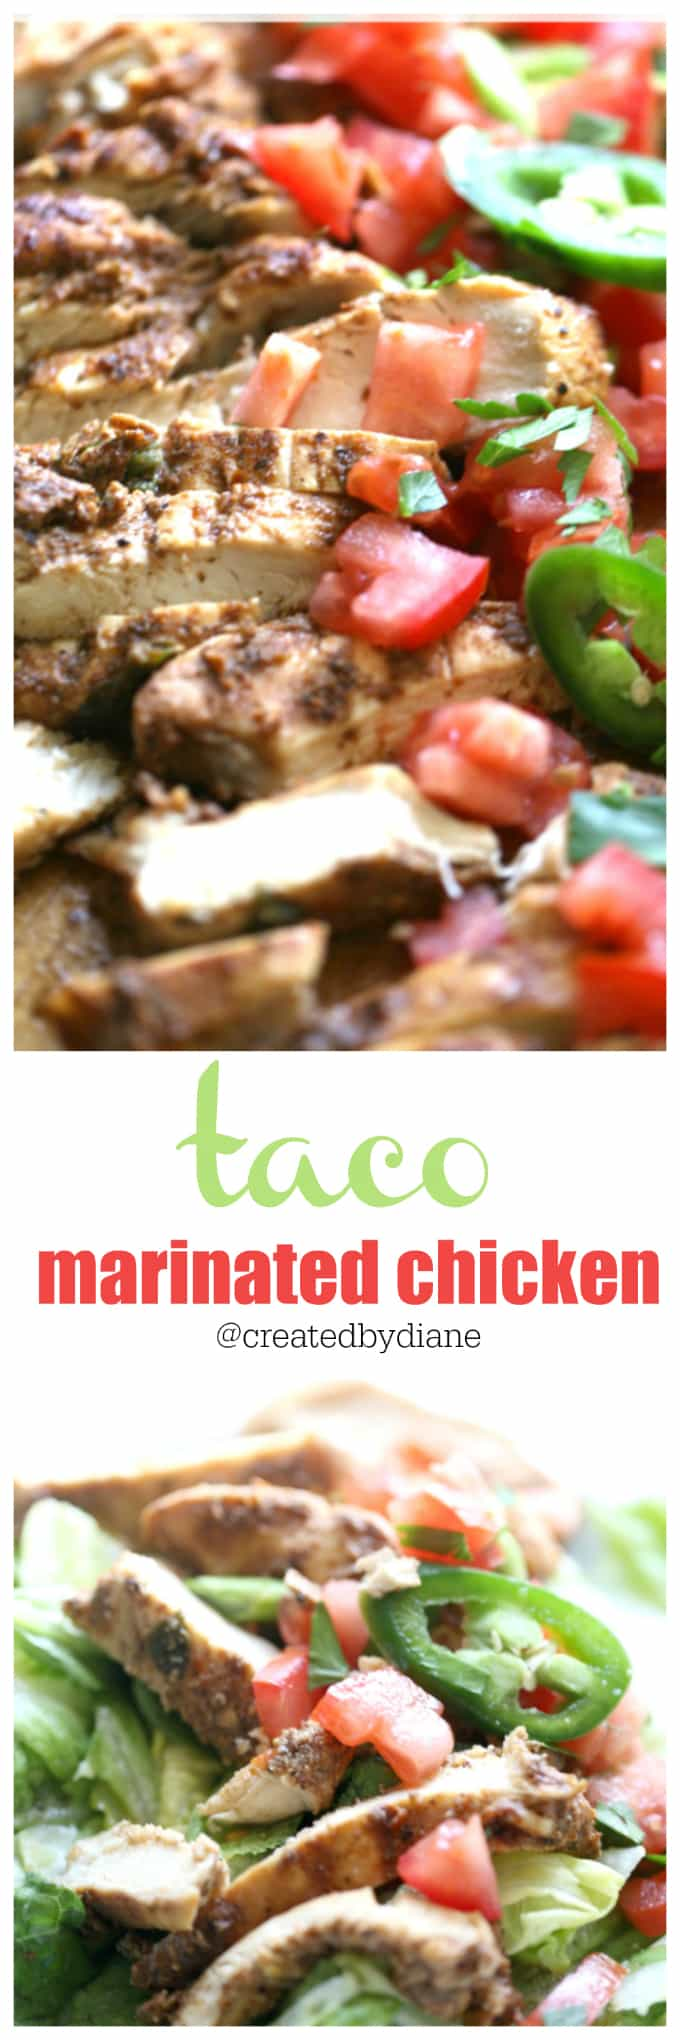 taco marinade recipe taco chicken, @createdbydiane